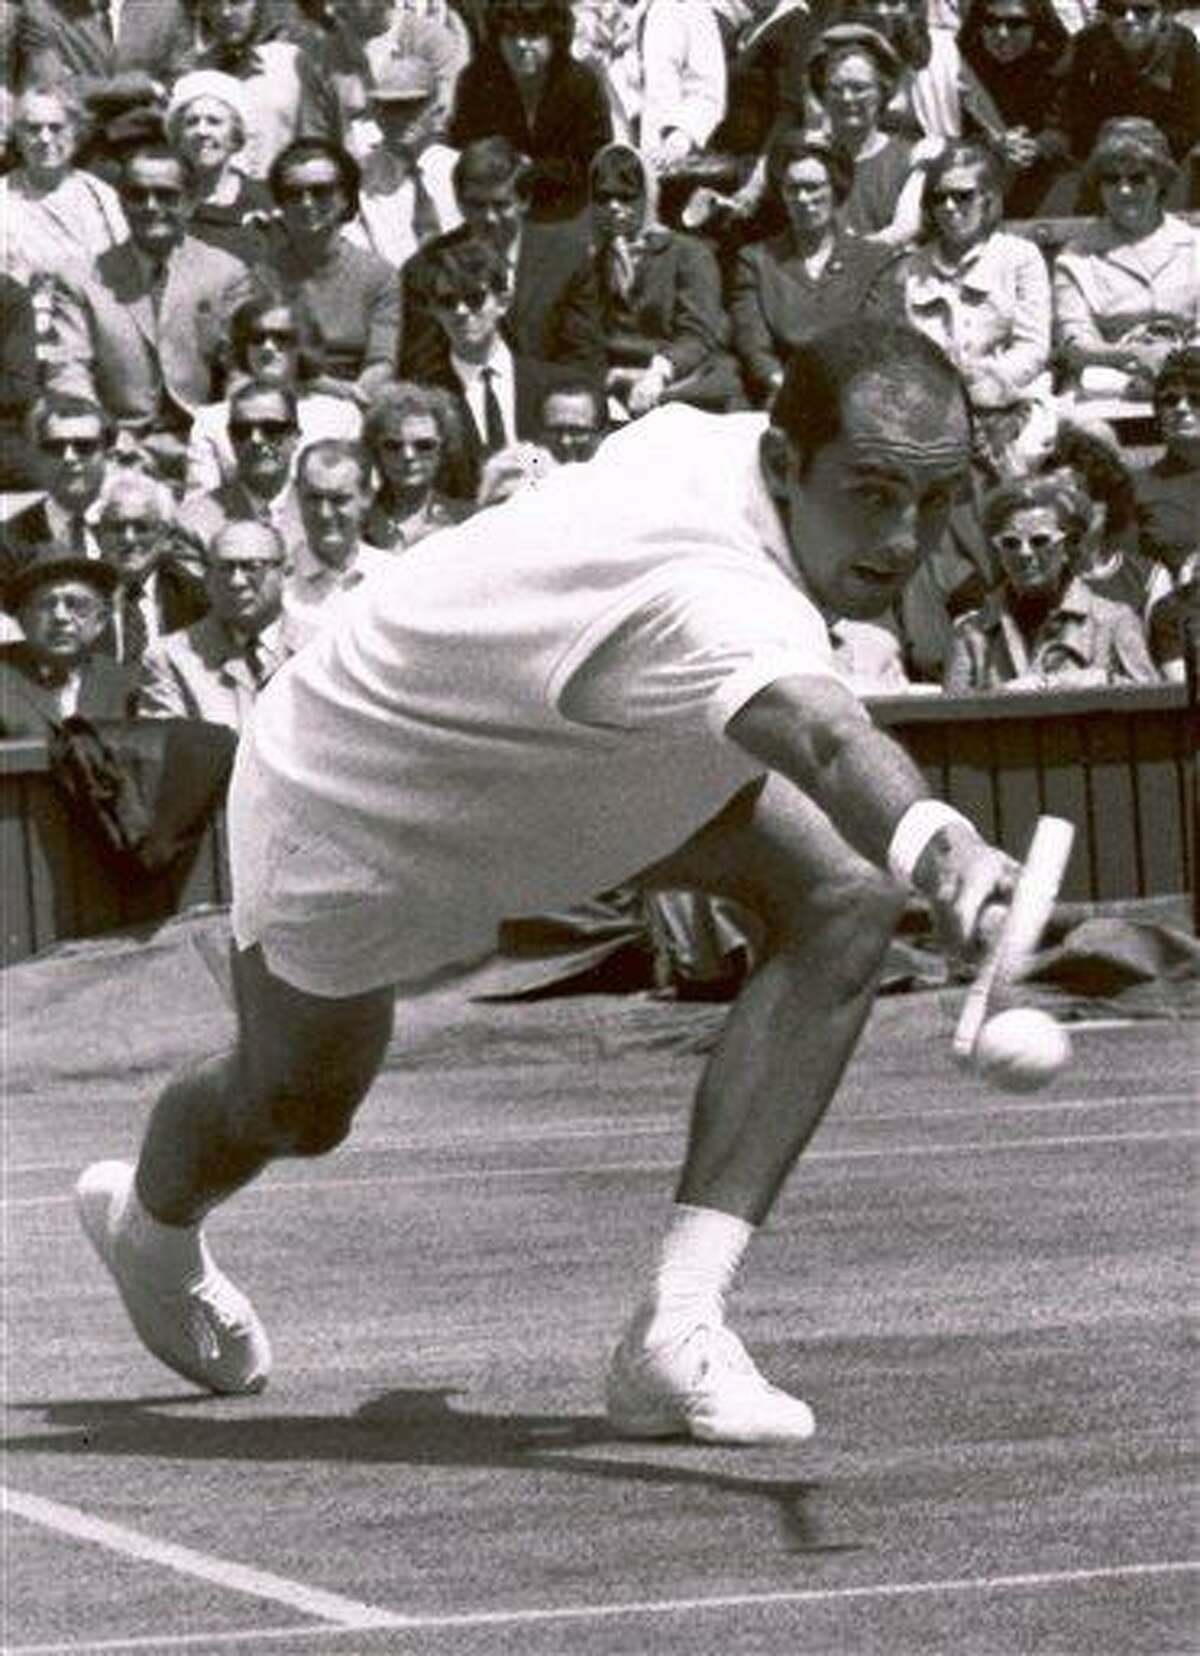 FILE - In this June 26, 1965, file photo, Bob Hewitt competes during a tennis match at Wimbledon, England. The Rhode Island-based International Tennis Hall of Fame has hired a Boston attorney to investigate allegations that one-time doubles champion Hewitt sexually abused underage girls he coached. (AP Photo, File)